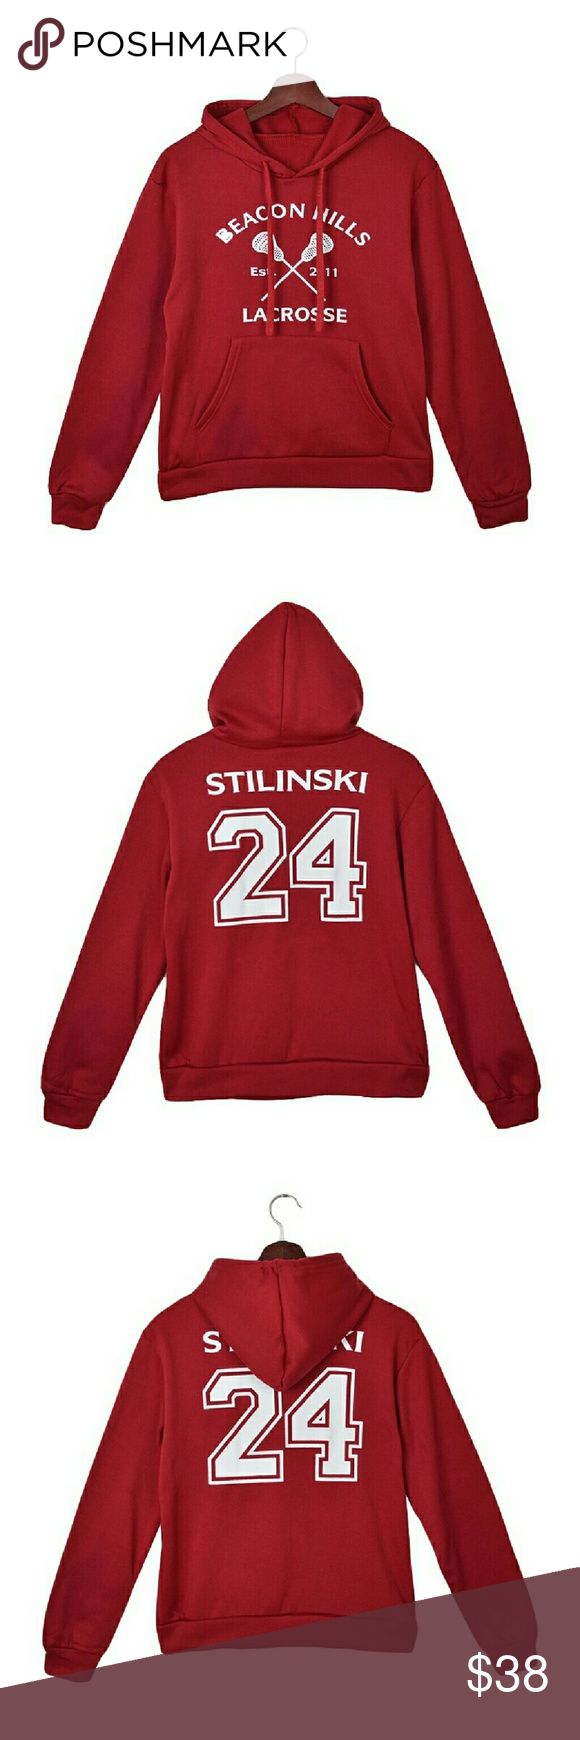 Teen wolf Stiles Stilinski #24 sweatshirt Cute teen wolf fleece lined pull over sweatshirt. Beacon hills lacrosse. Brand new never worn. Ordered online and it didn't fit me. Not urban outfitters. Urban Outfitters Tops Sweatshirts & Hoodies